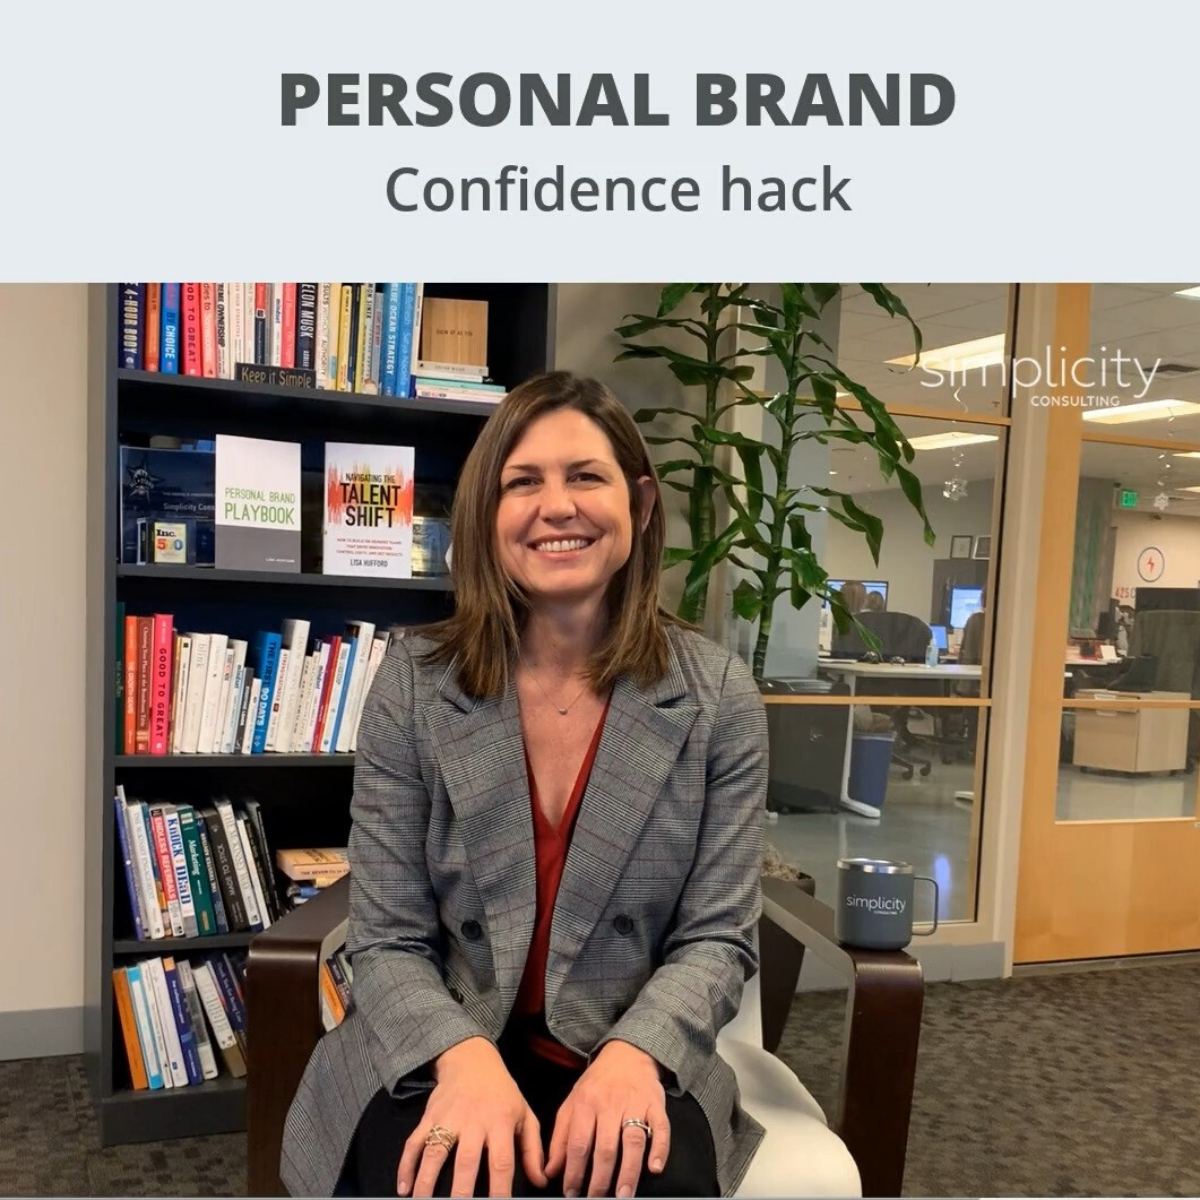 Personal Brand - Simplicity - Lisa Hufford - Confidence Hack-1